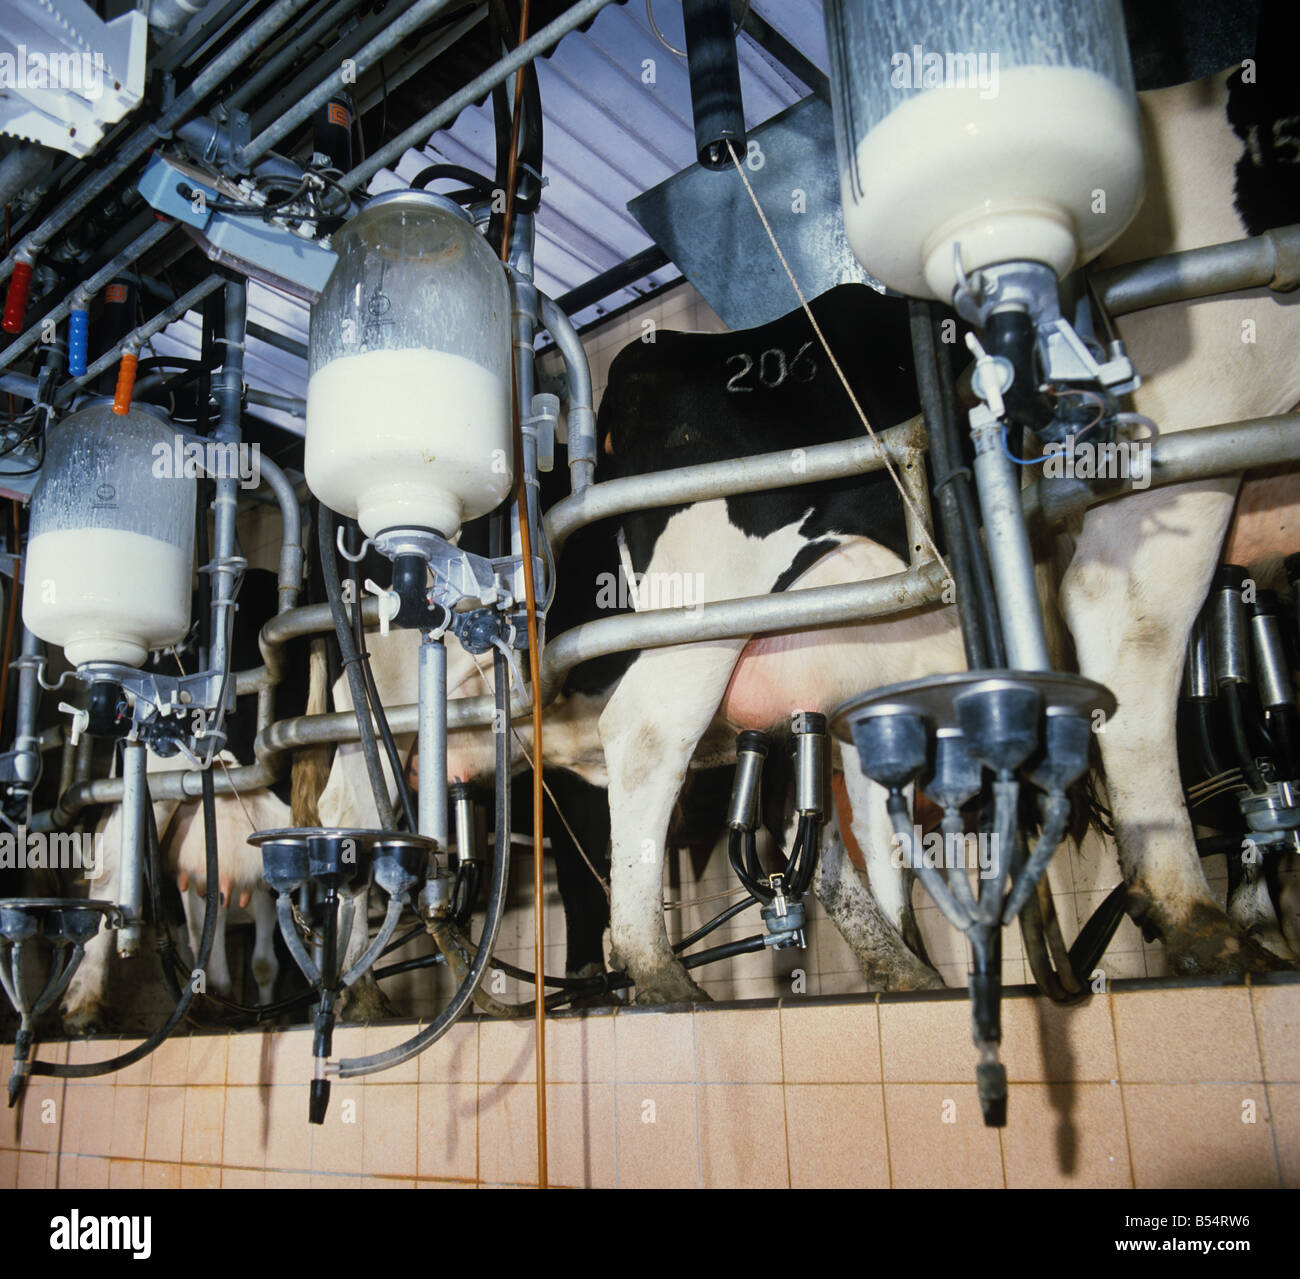 Friesian dairy cows at milking time in a herring bone parlour - Stock Image